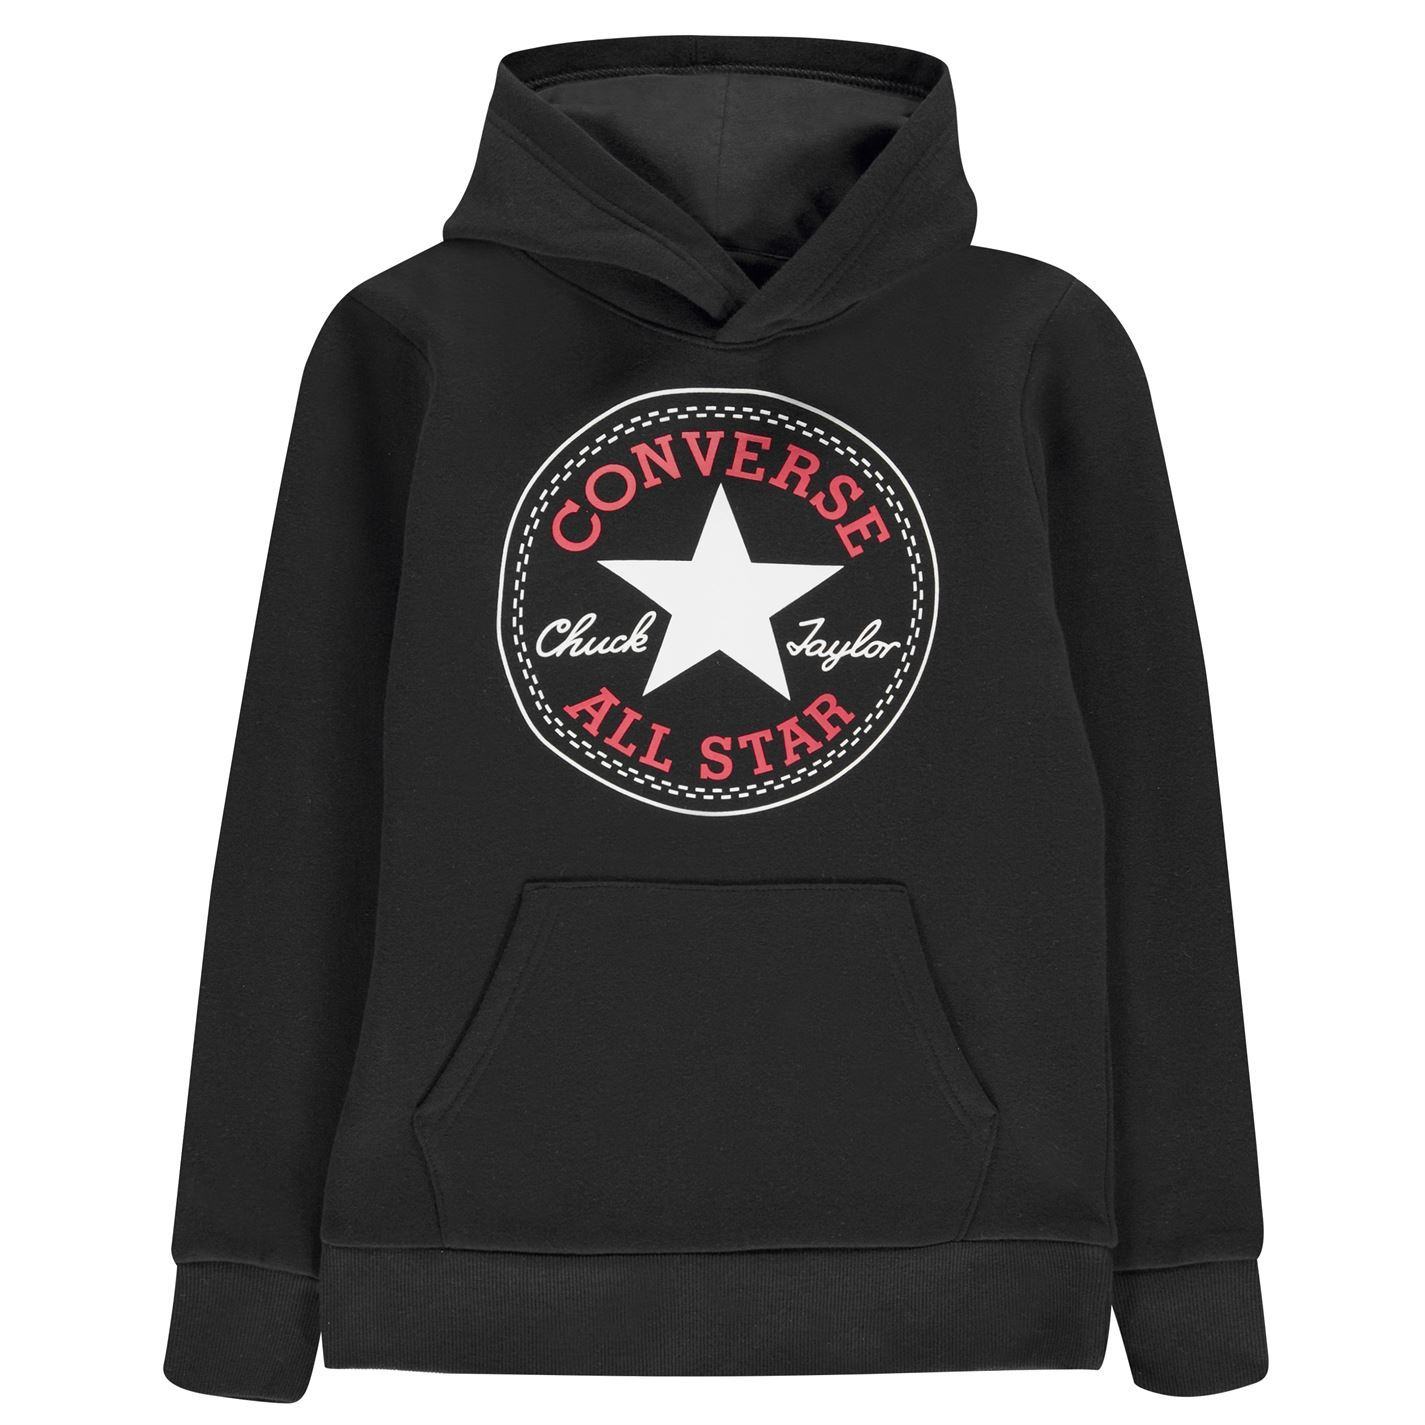 Details about Converse All Star Logo Pullover Hoody Juniors Skate Clothing Hoodie Sweater